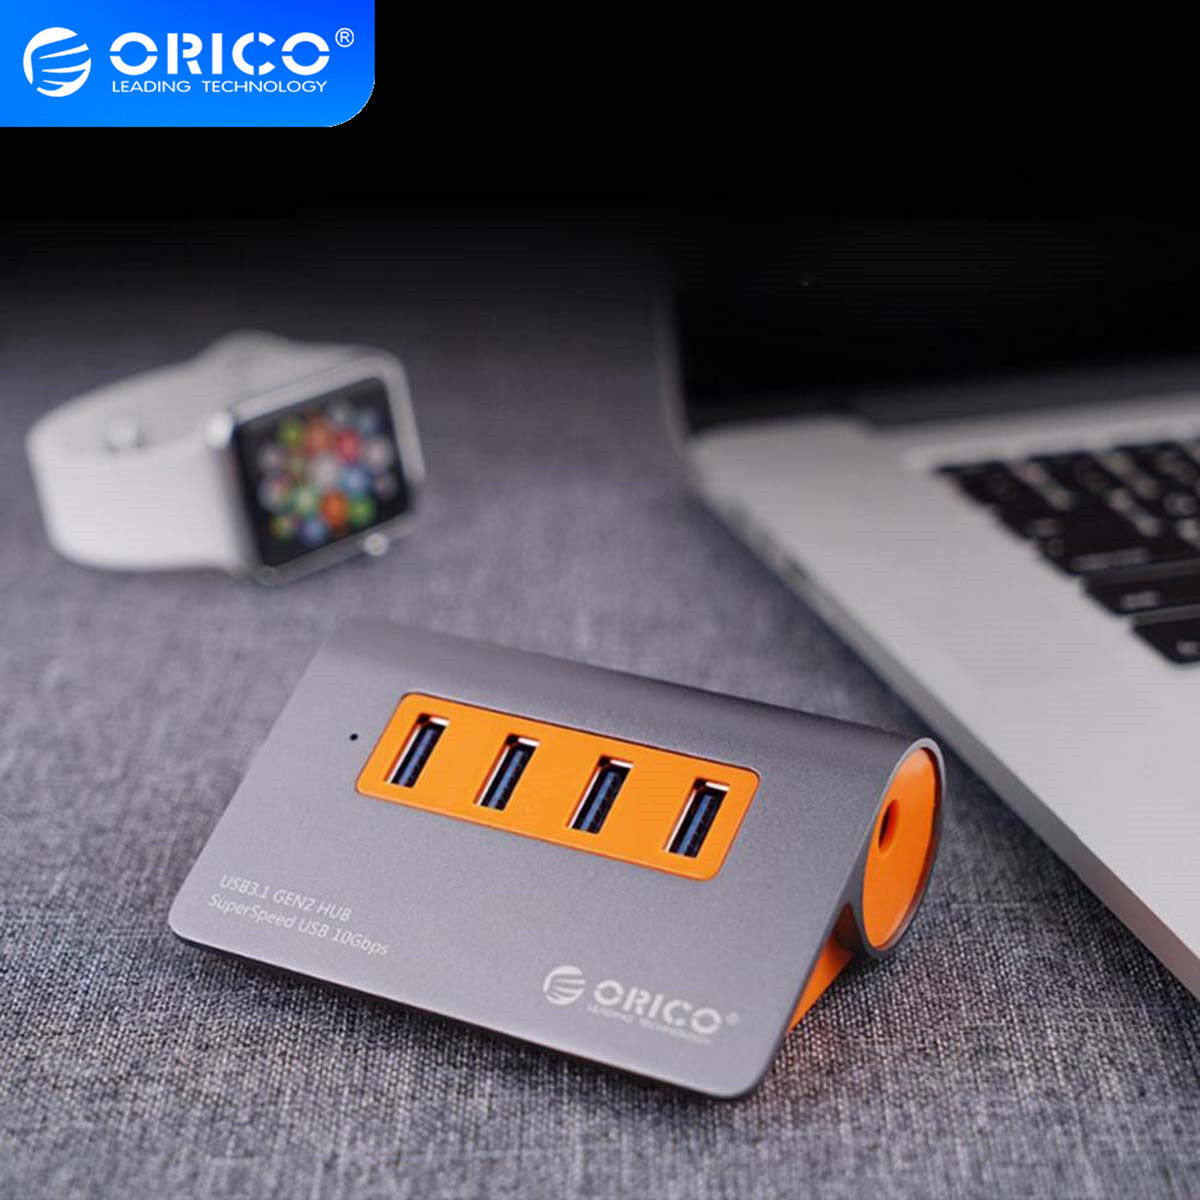 ORICO Aluminum <font><b>4</b></font> <font><b>Ports</b></font> USB3.1 <font><b>Hub</b></font> 10 Gbps Super Transmission Speed <font><b>USB</b></font> Splitter with 12V Power Adapter For Computer Accessories image